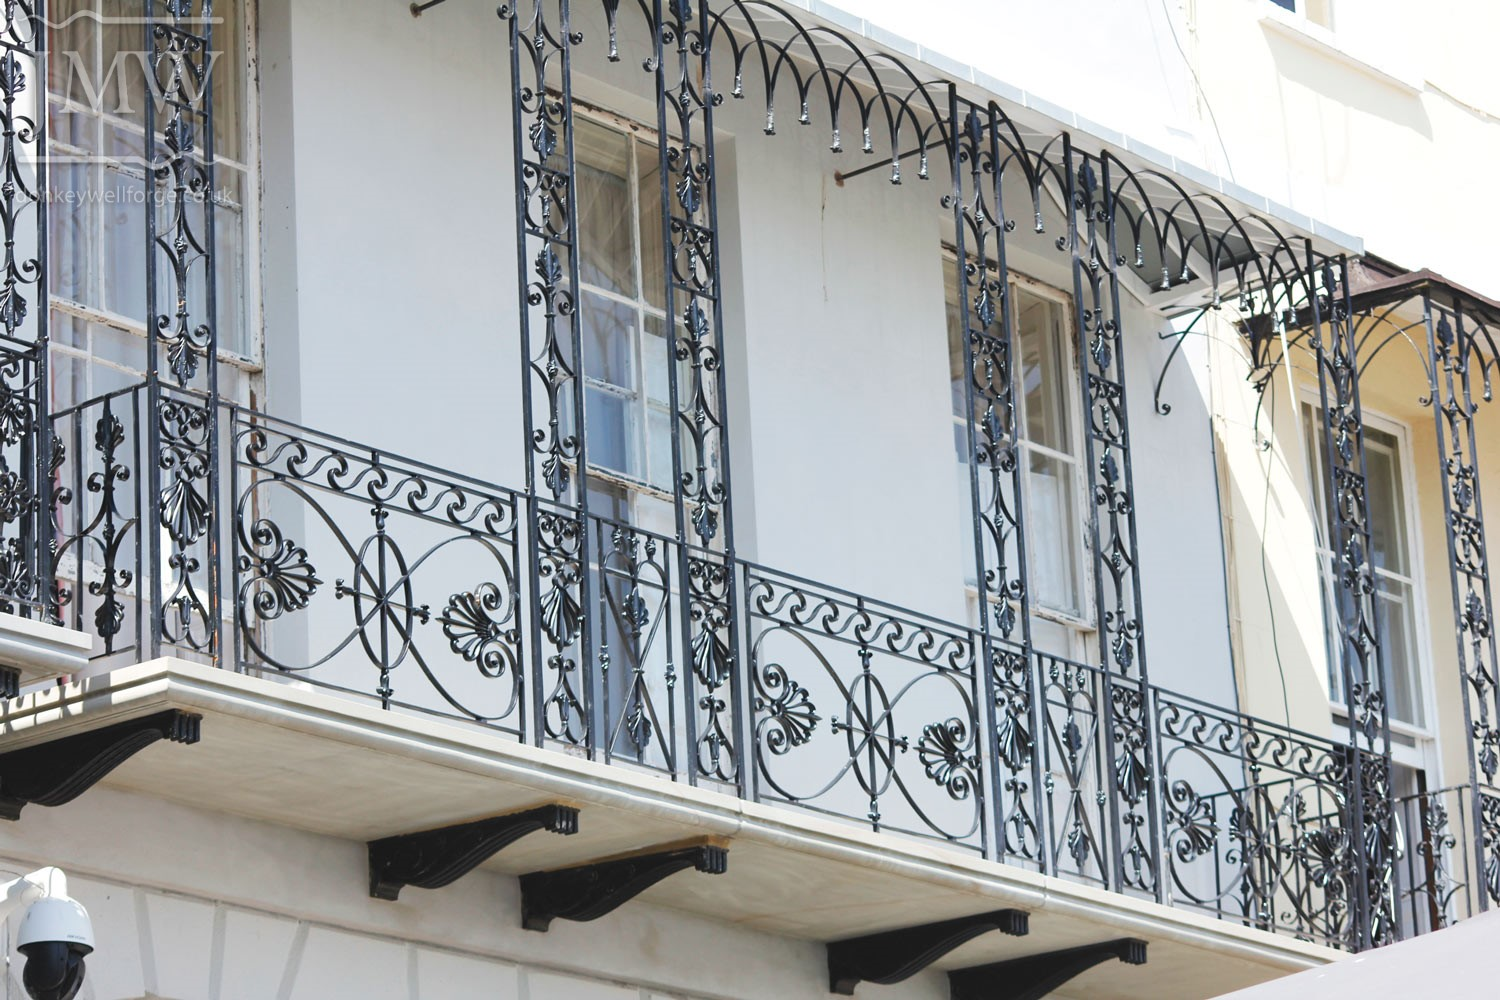 balcony-railings-iron-forge-blacksmith-cheltenham-restoration-lead-castings